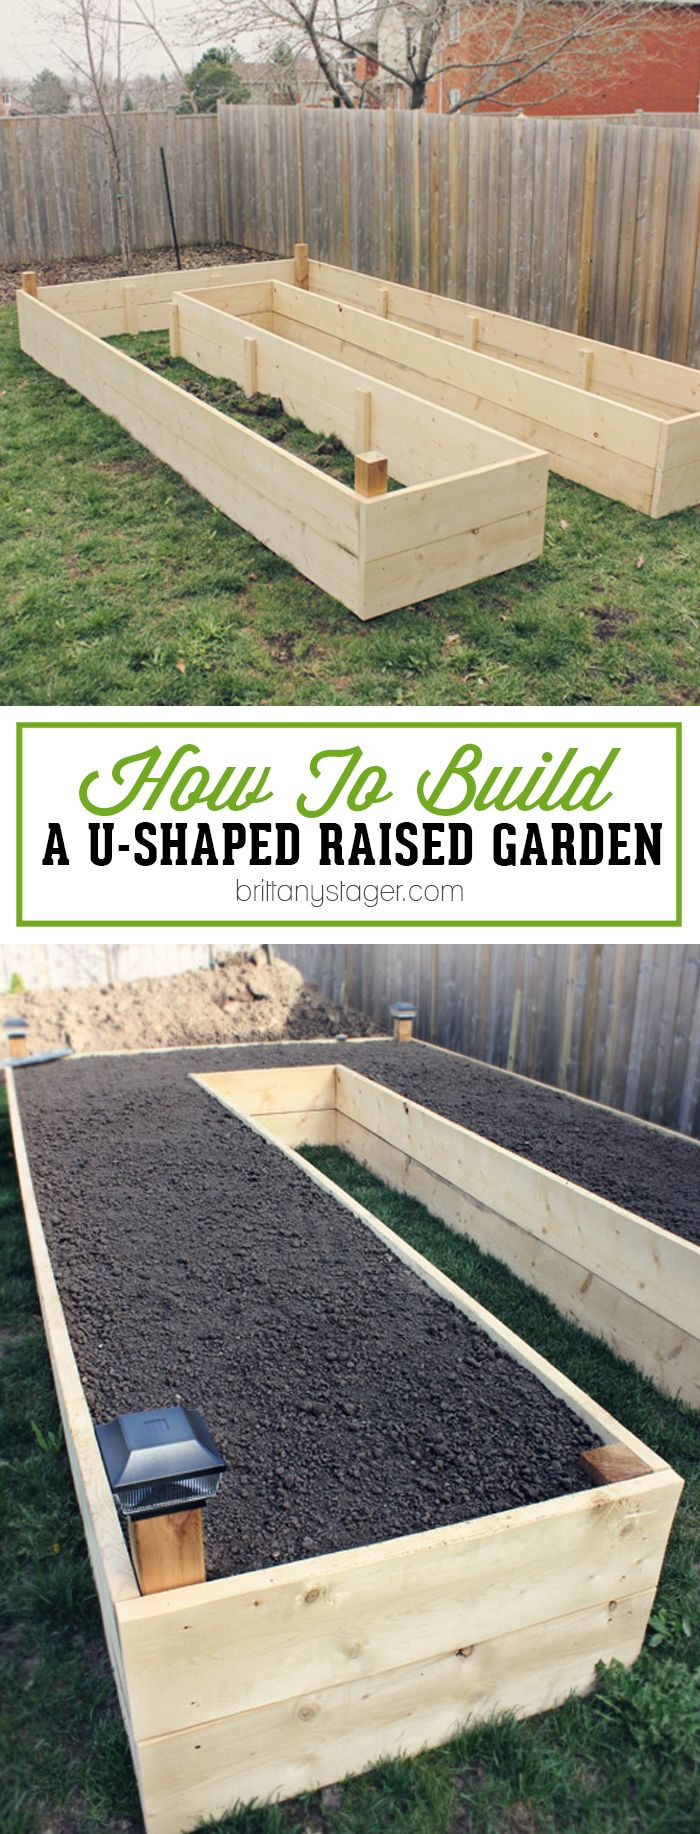 Spring is the perfect time to get your brand new garden in order. Building a U-Shaped Raised Garden Bed offers many advantages including easy of access, scale, and protection from animals. This easy how-to guide provides you will a drawing and rendering of a u-shaped raised garden bed, making it easy for you to build one yourself. {via BrittanyStager.com}